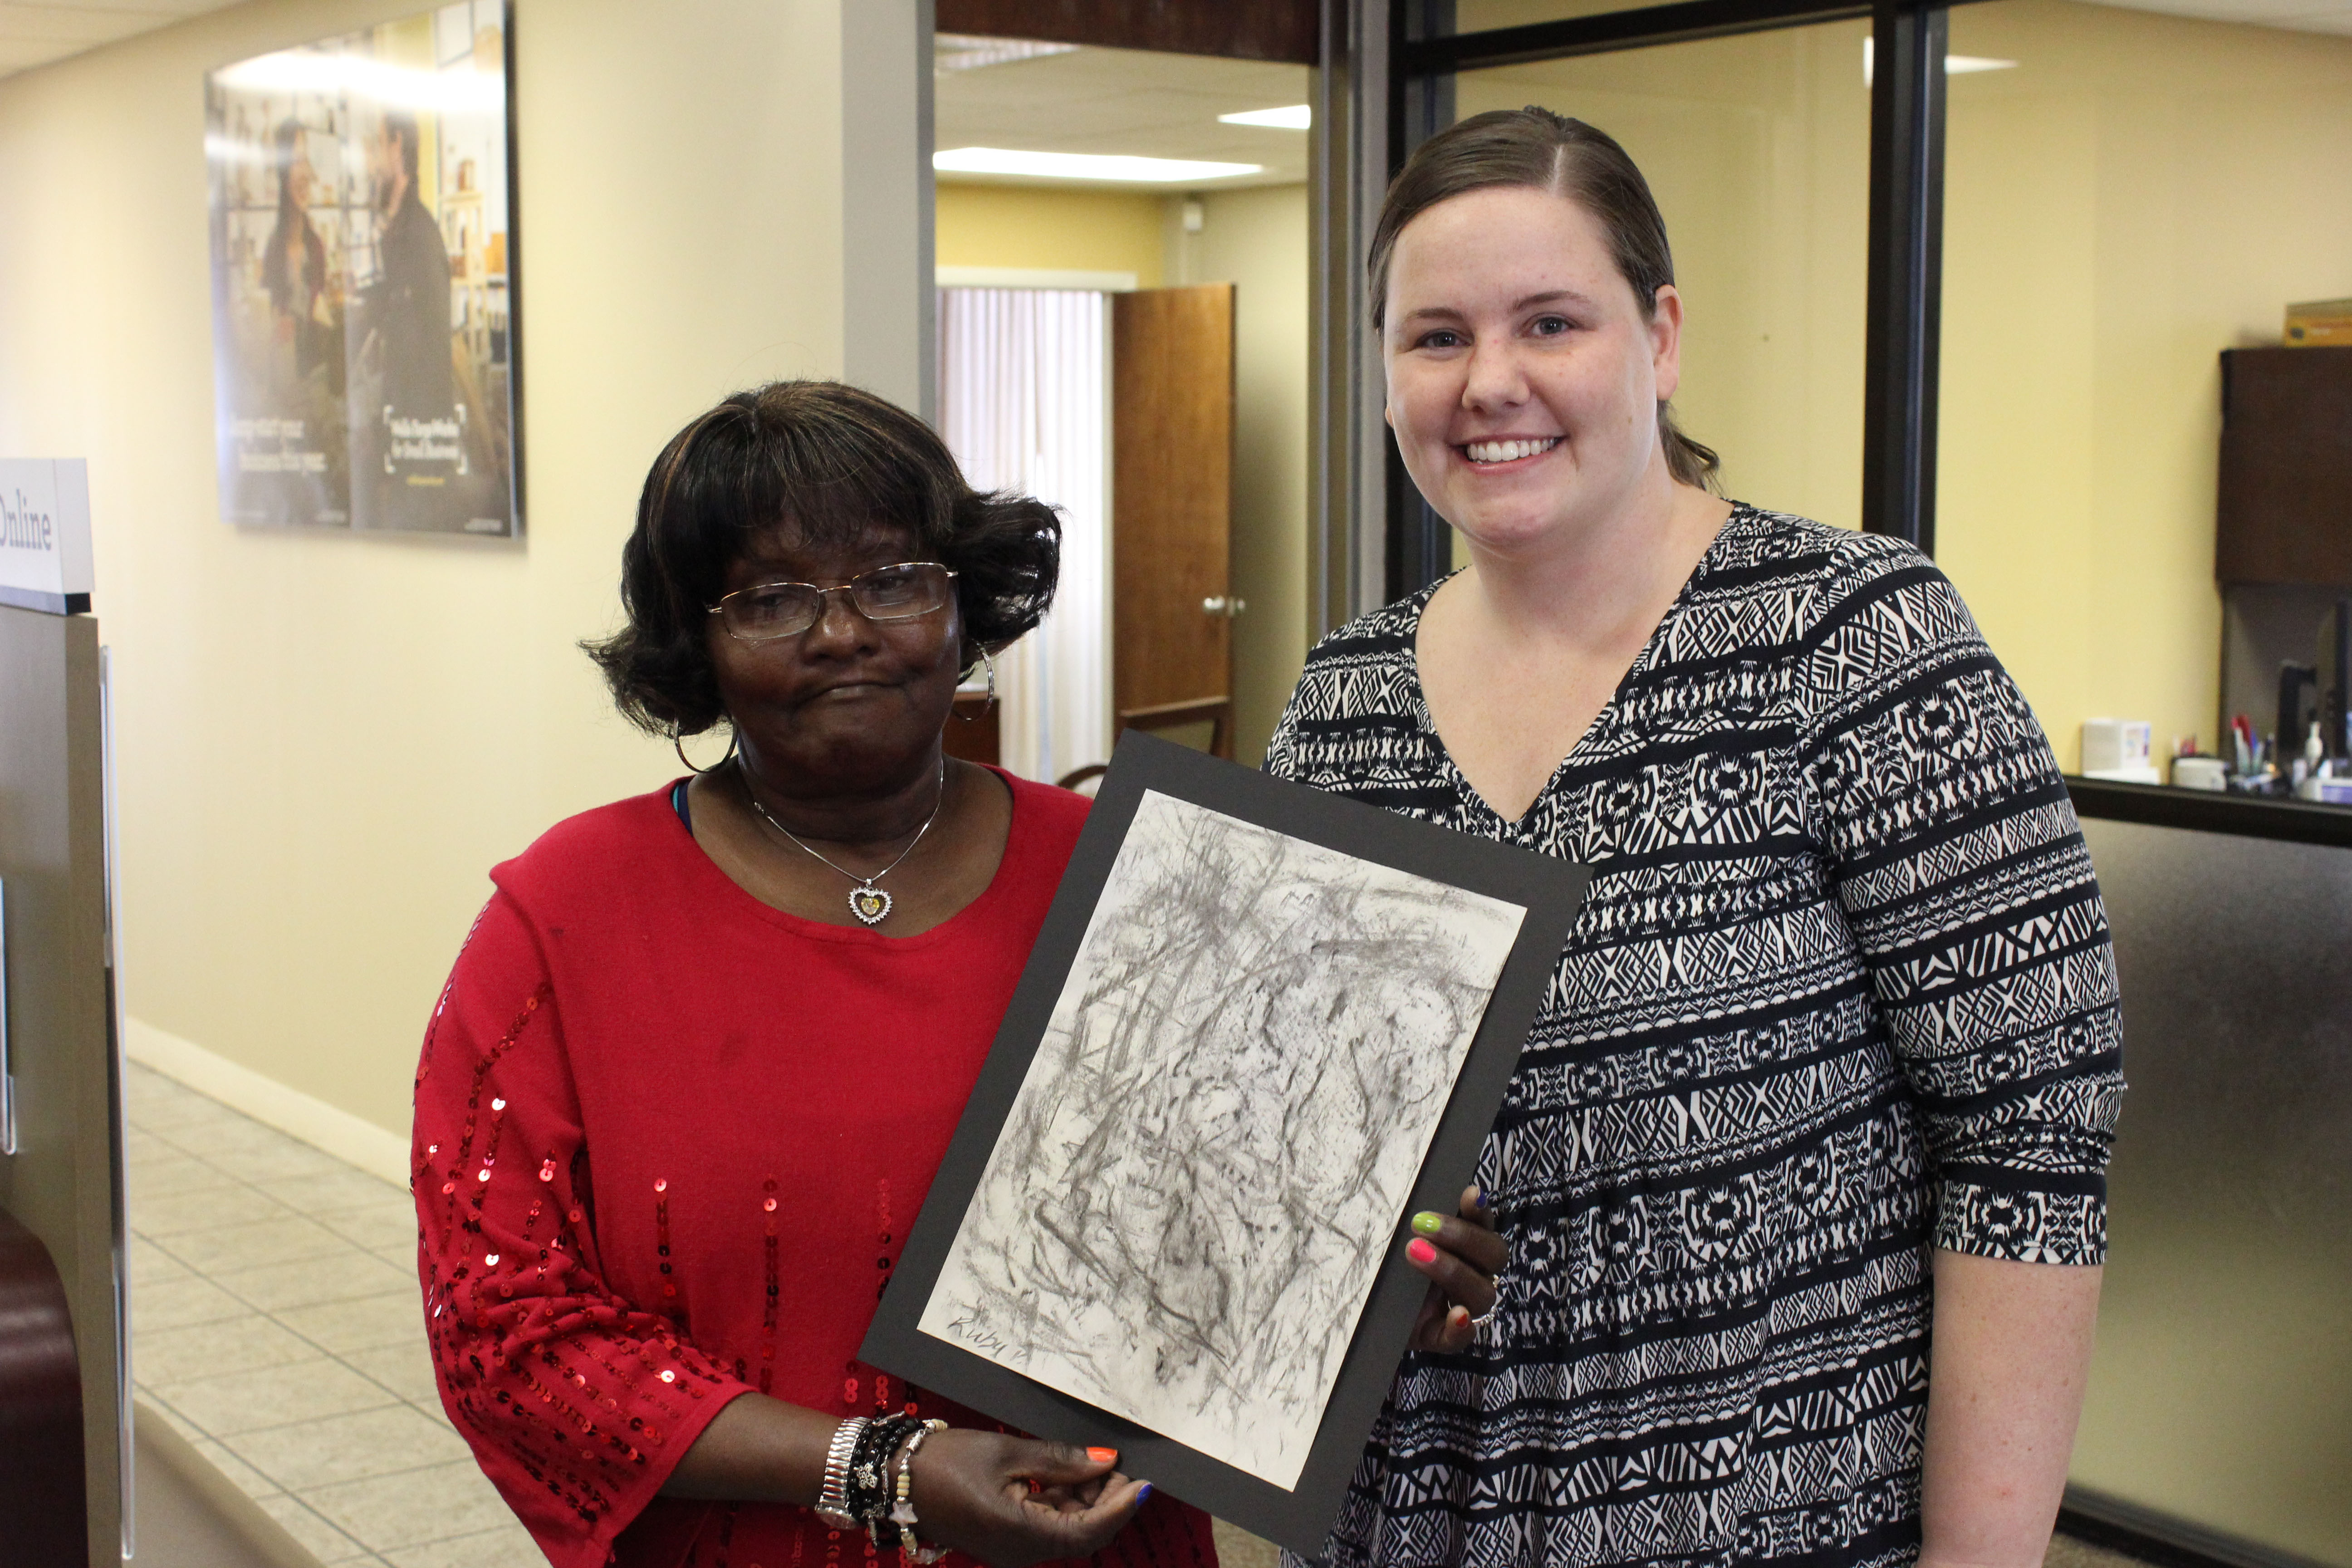 Sunland resident Ruby P., left, proudly displays her willow charcoal rubbing with a Wells Fargo employee.